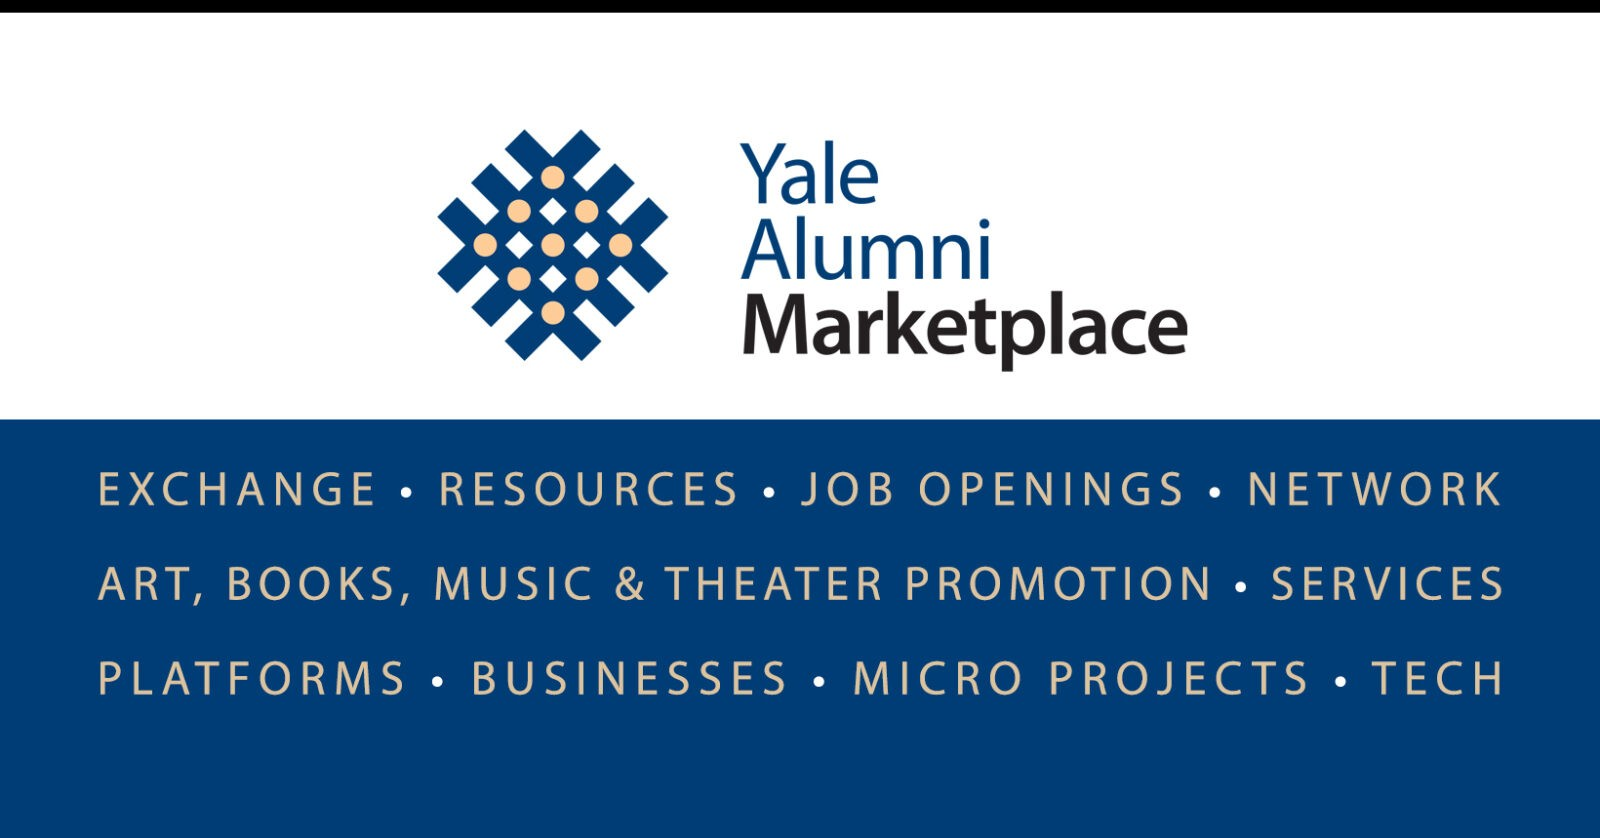 yalealumnimarketplace